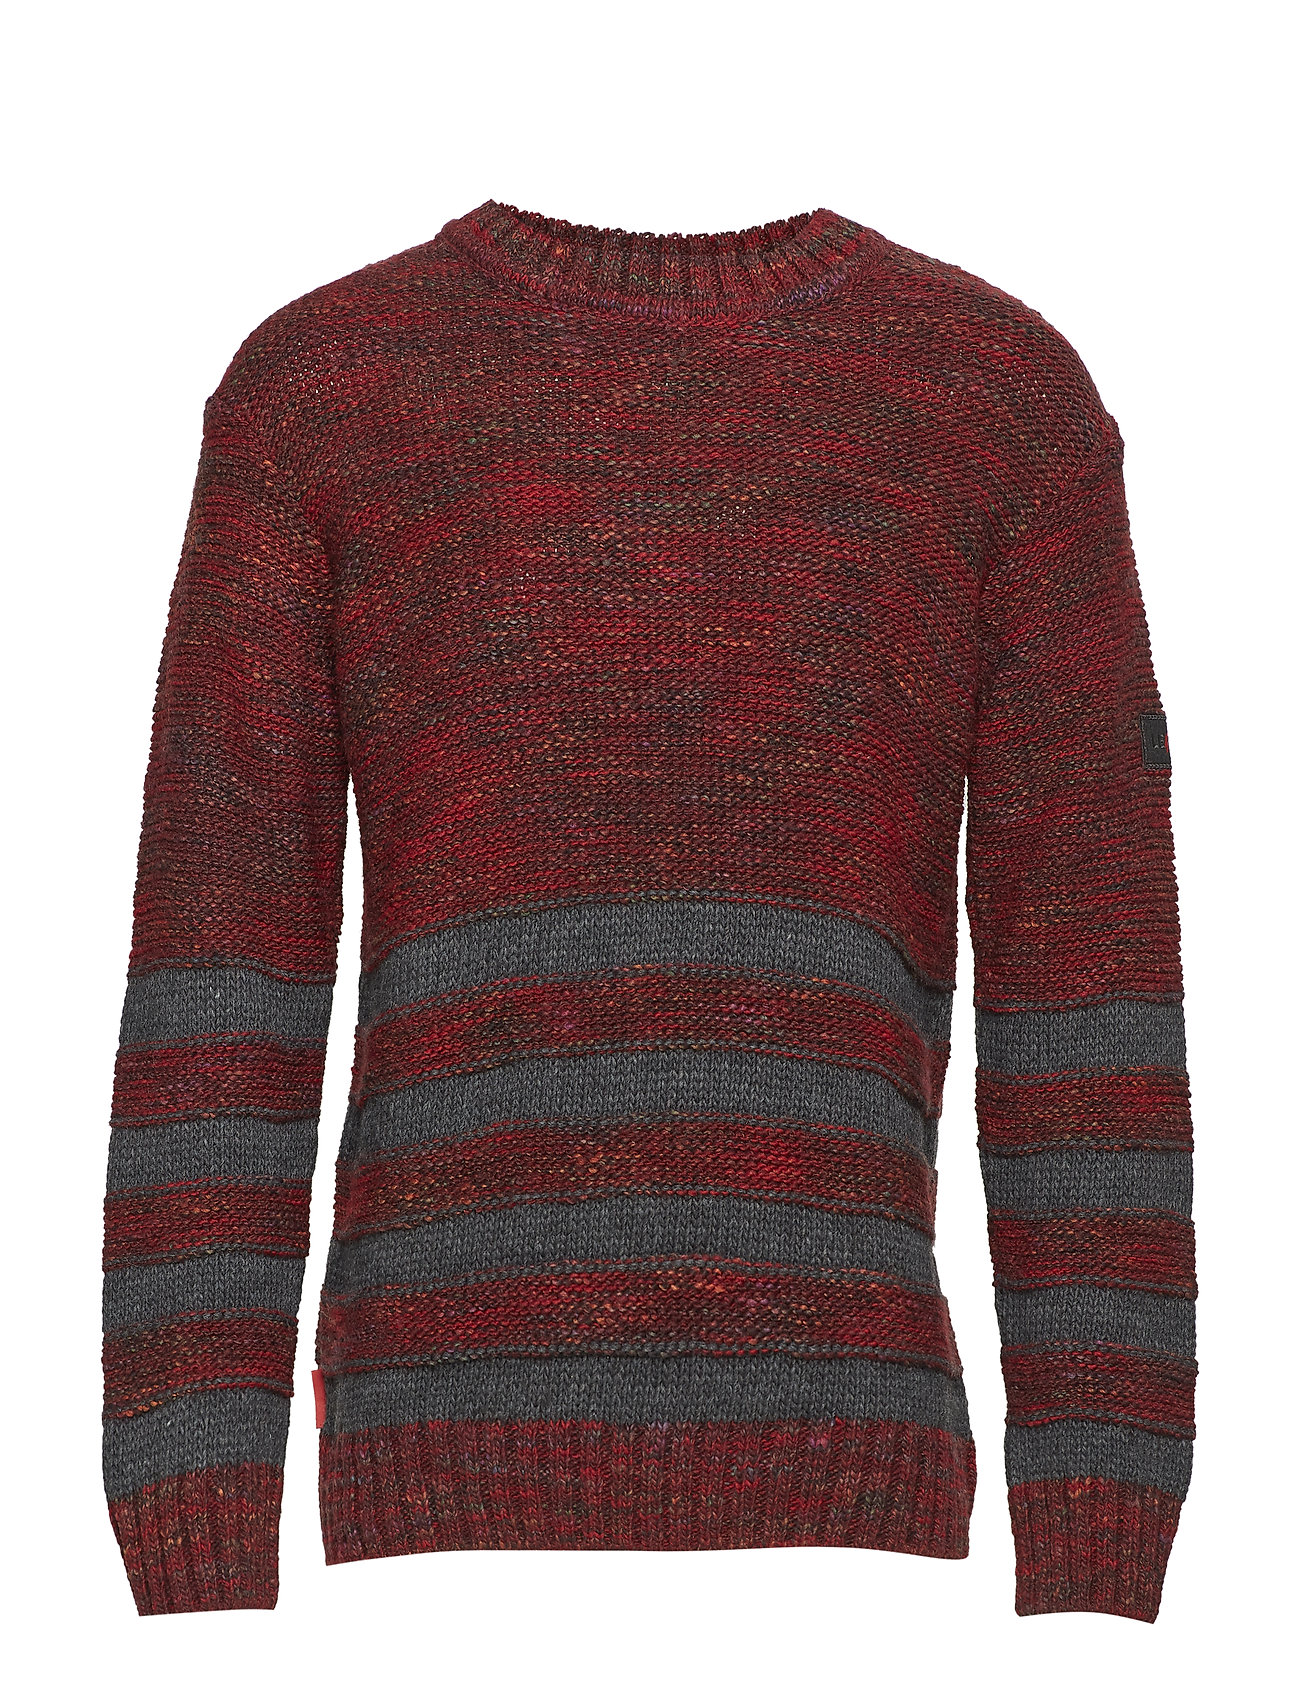 87 Flicker Knit maroon Knit maroon 87 Flicker Flicker STWUq0nxO